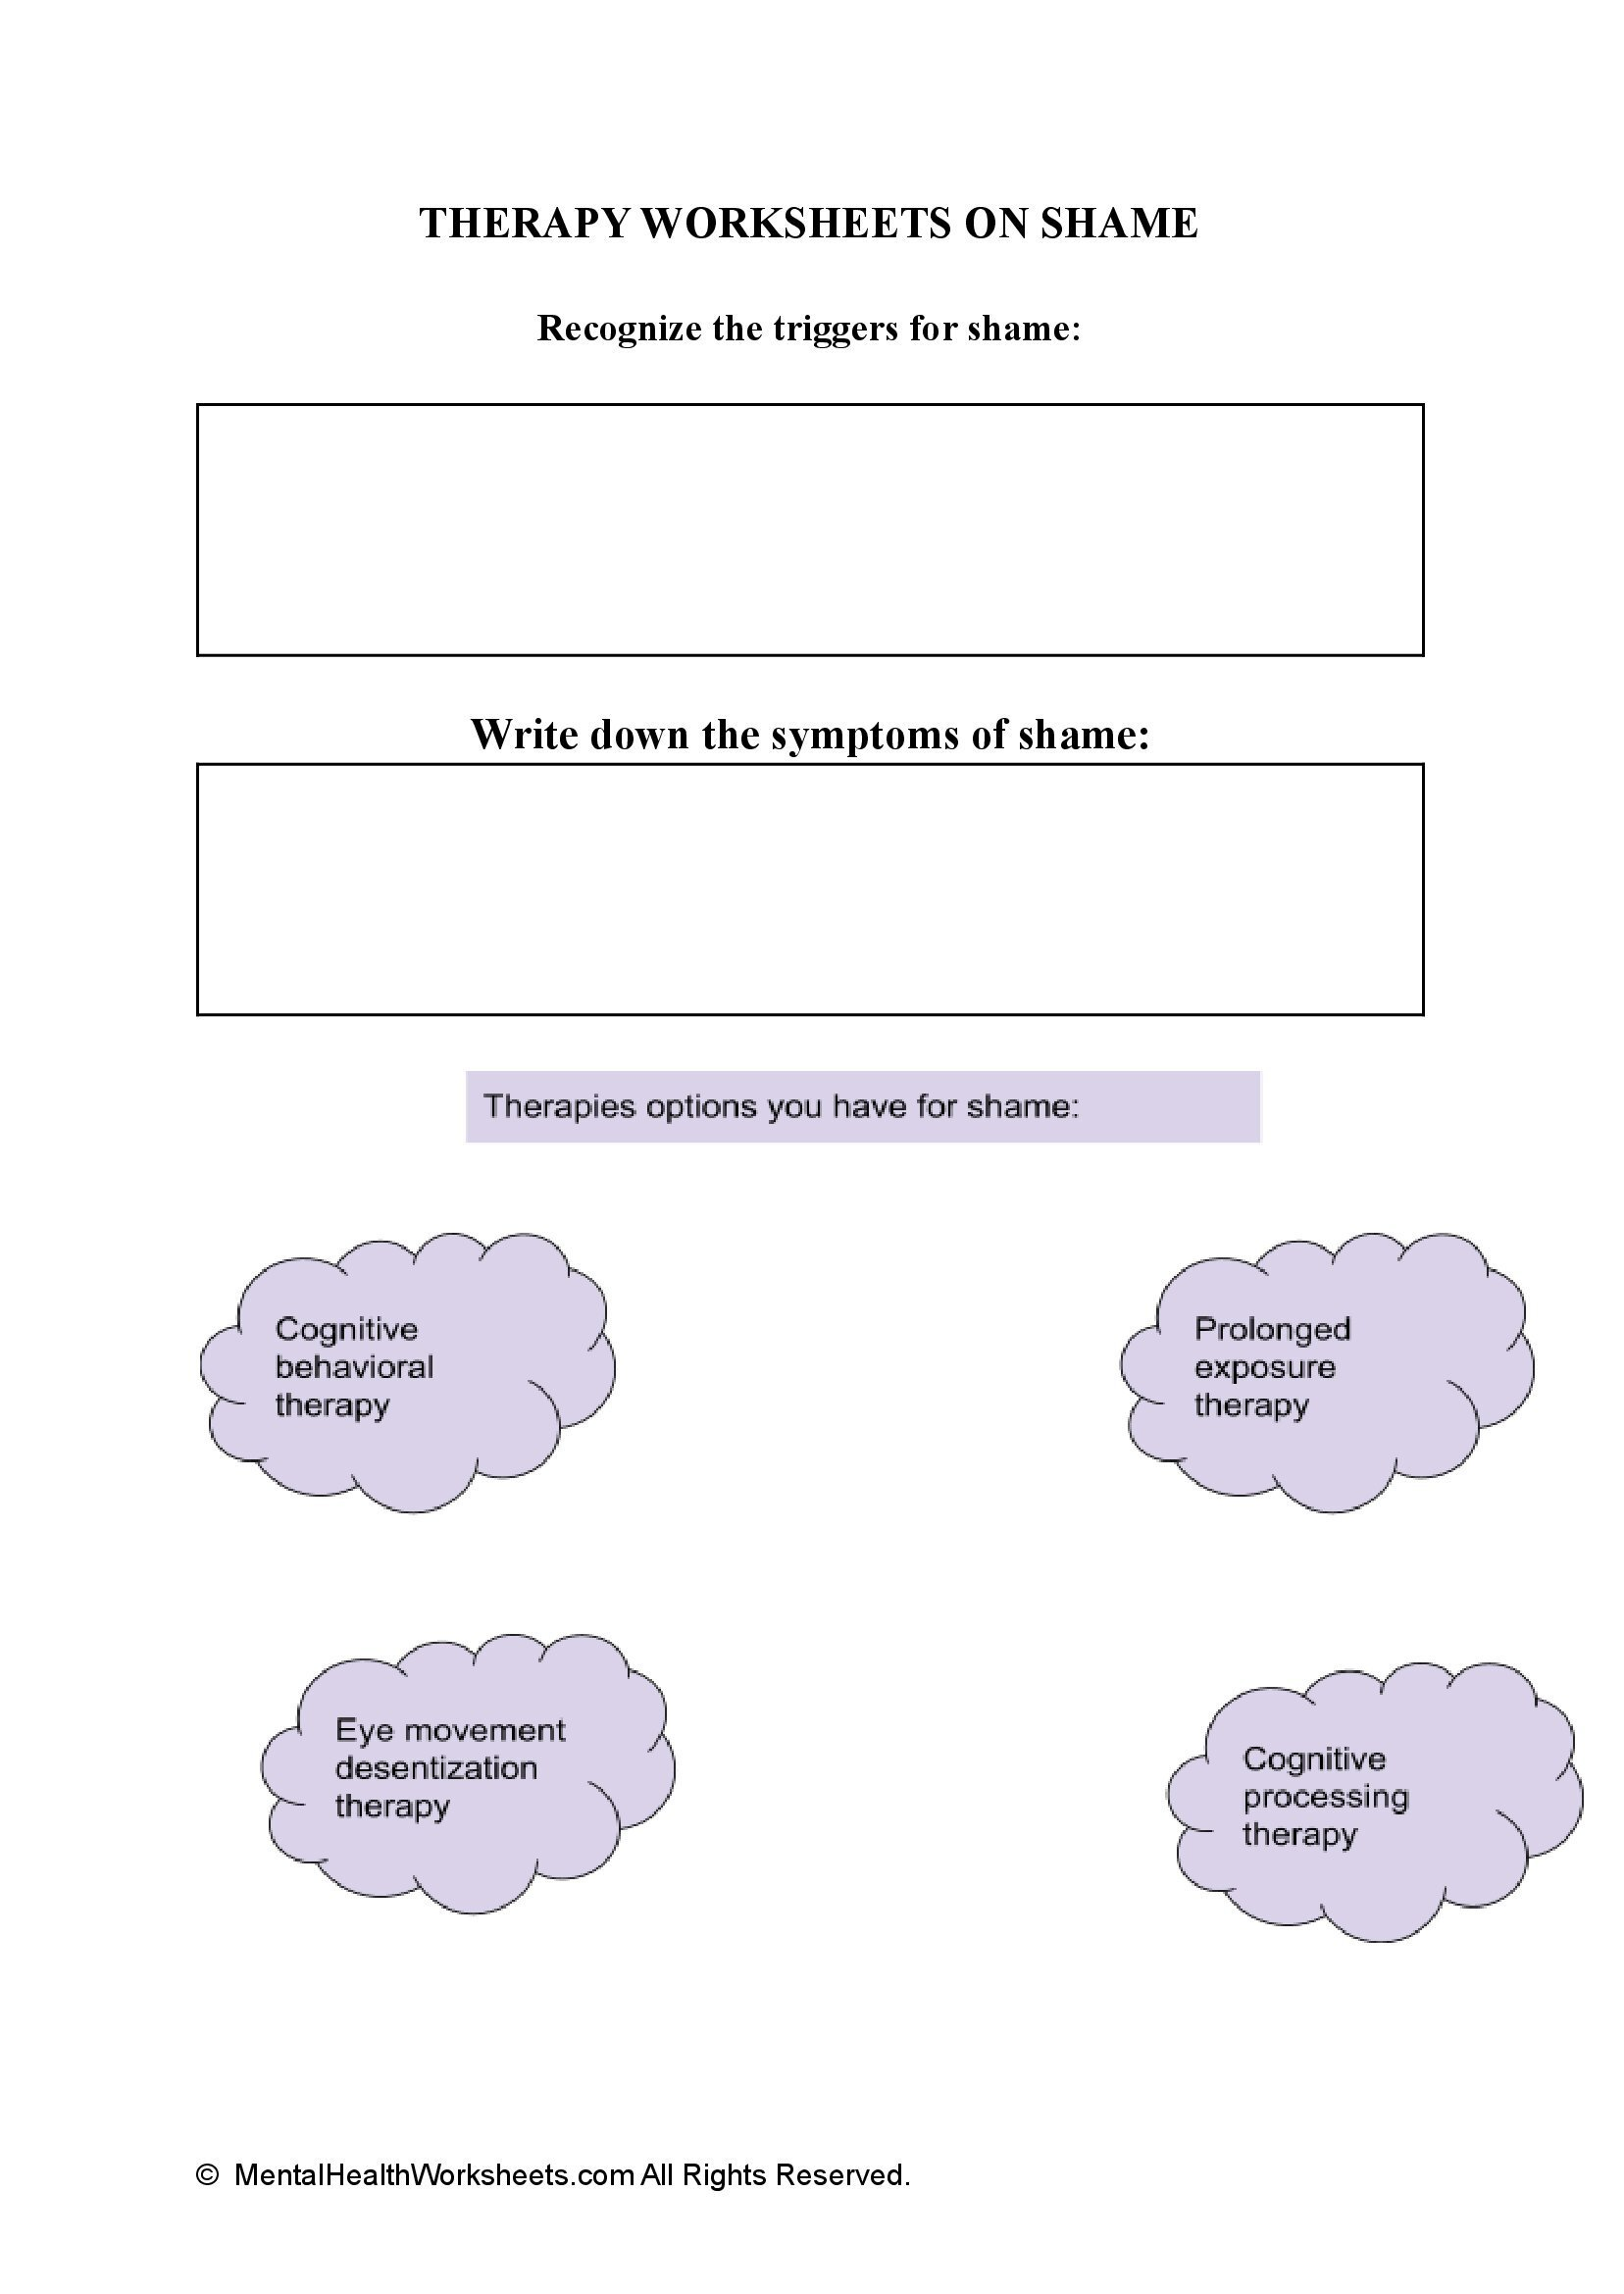 THERAPY WORKSHEETS ON SHAME